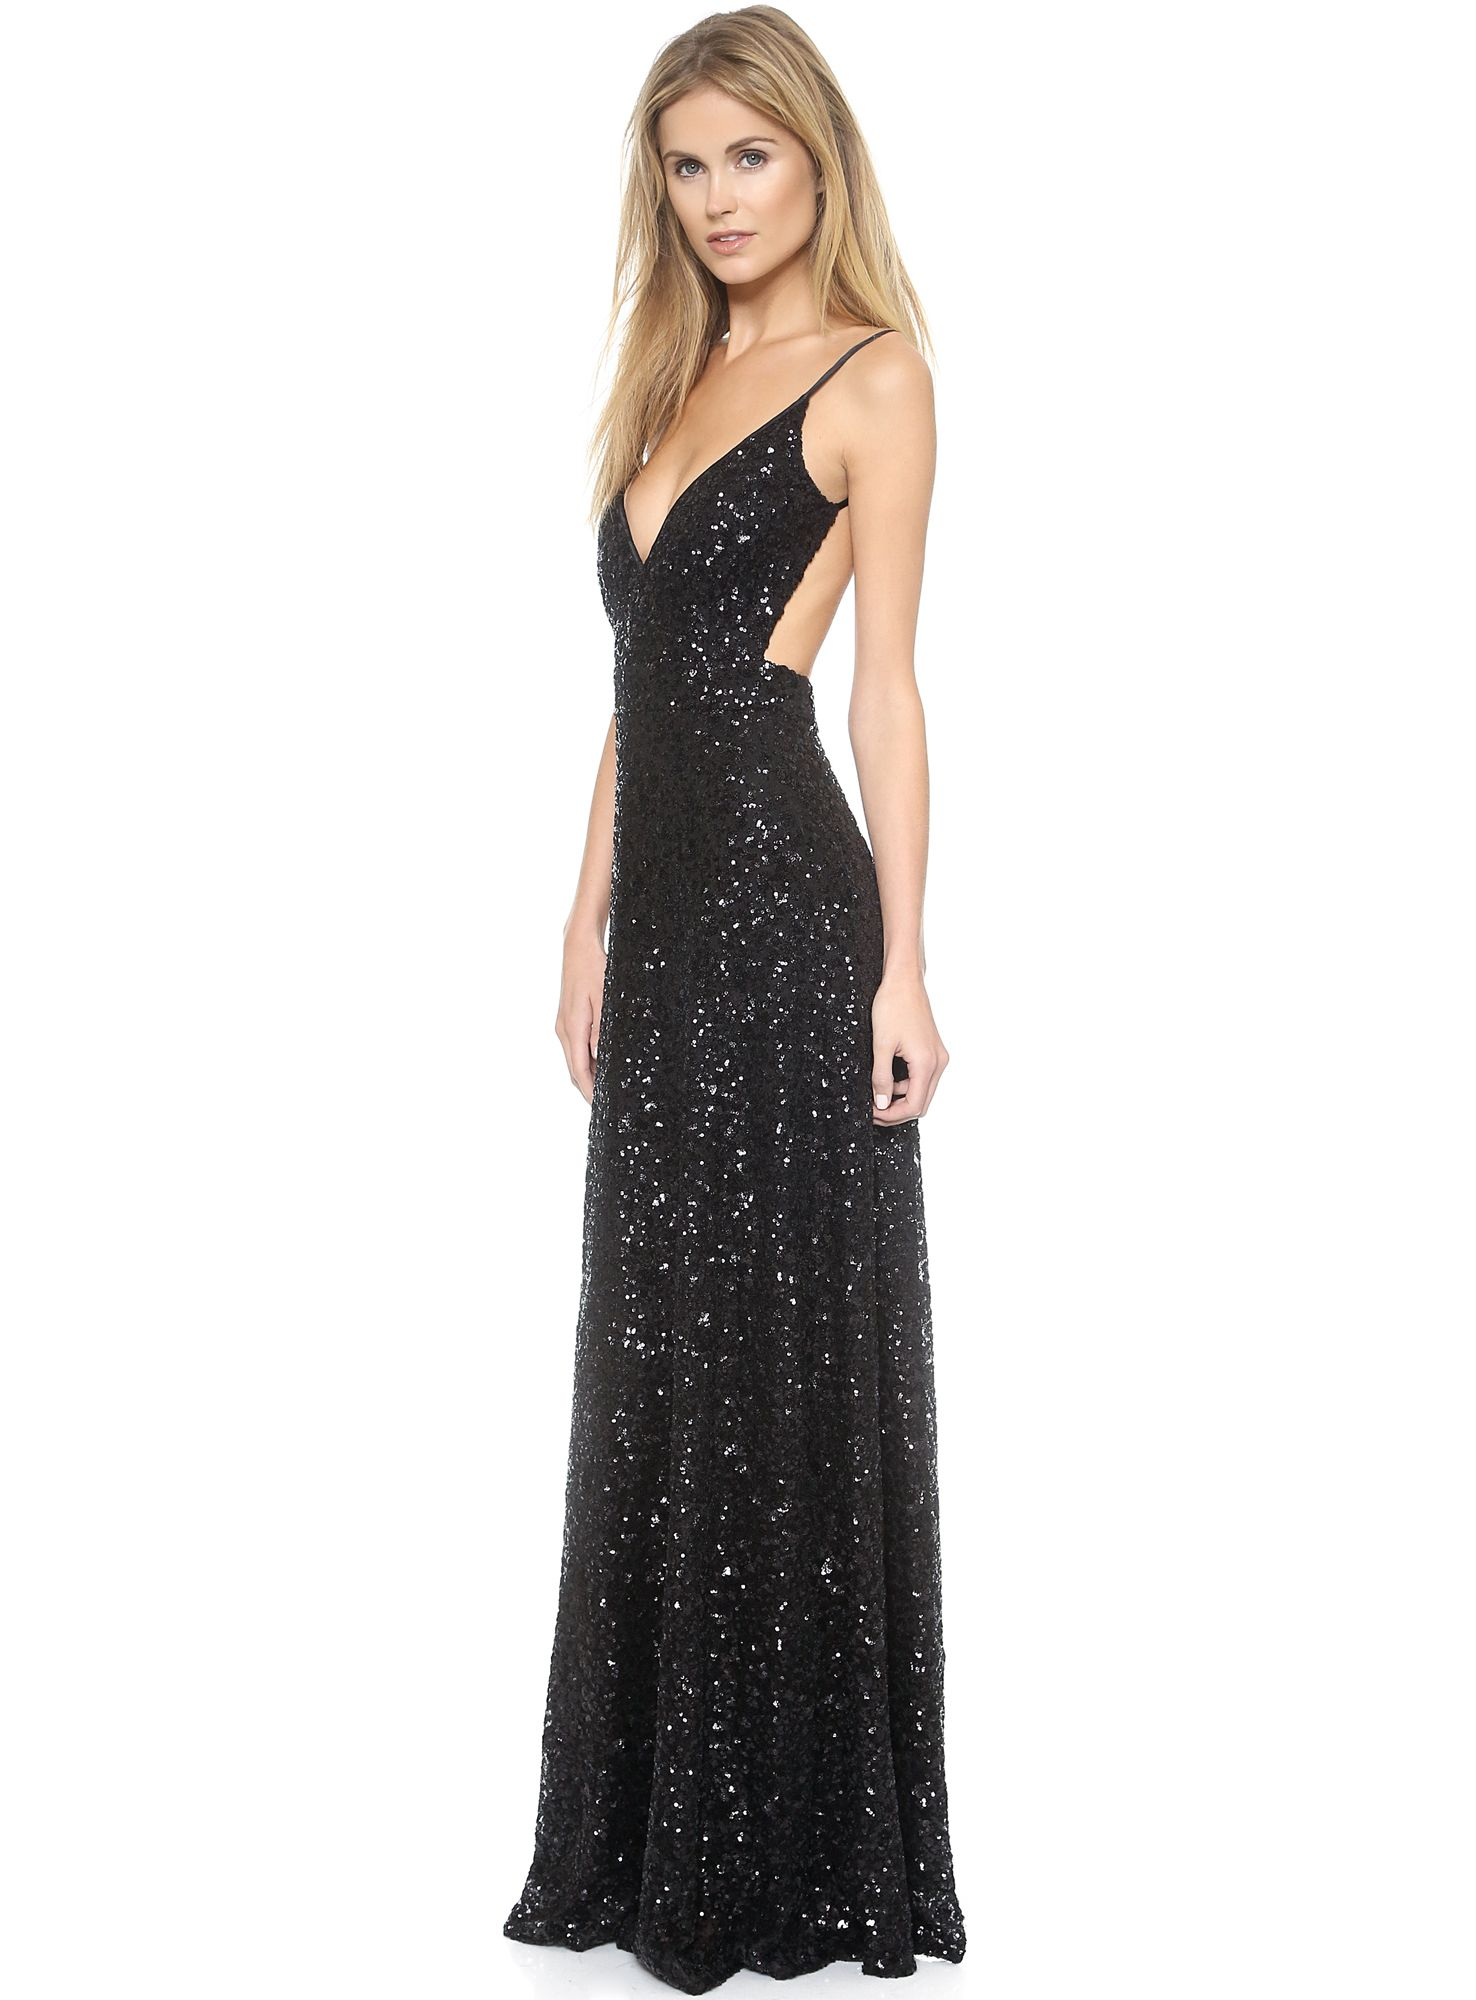 Shop black spaghetti strap sequined backless maxi dress online